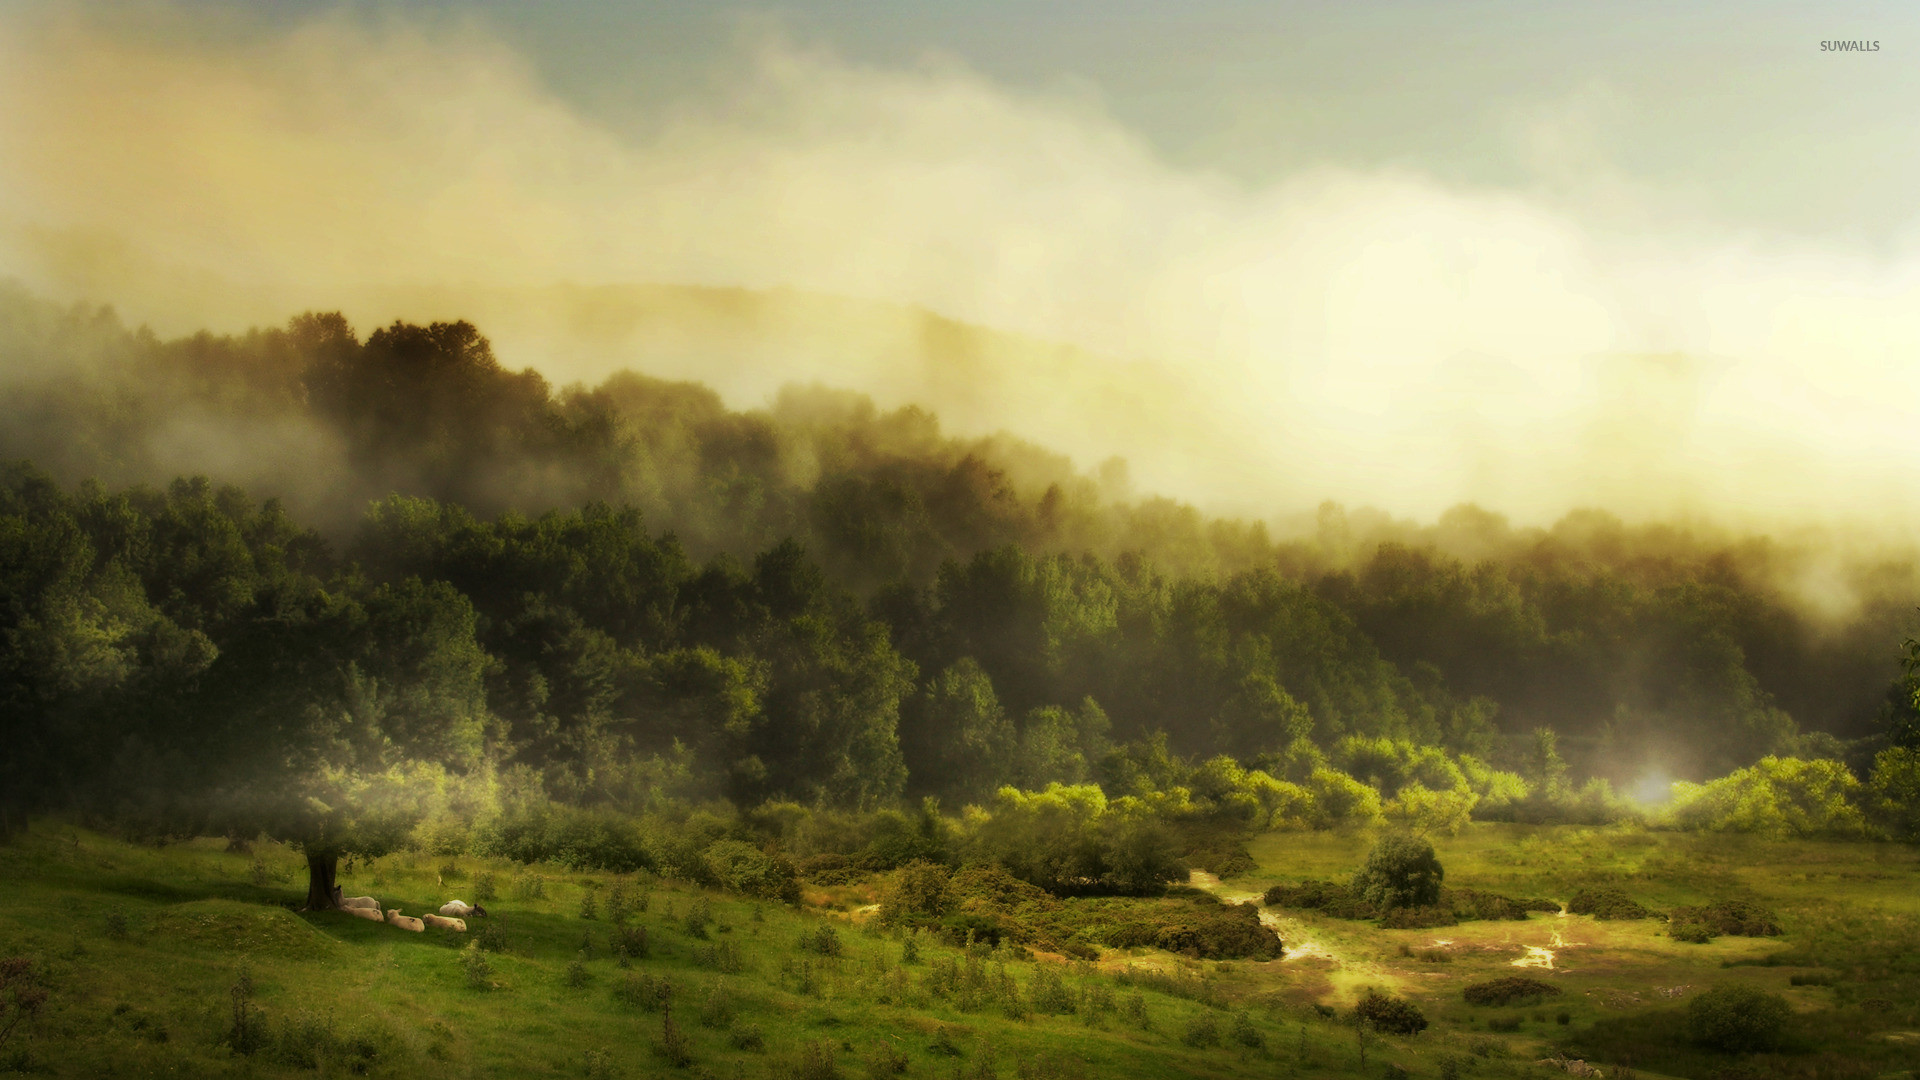 Lambs resting near the foggy forest wallpaper